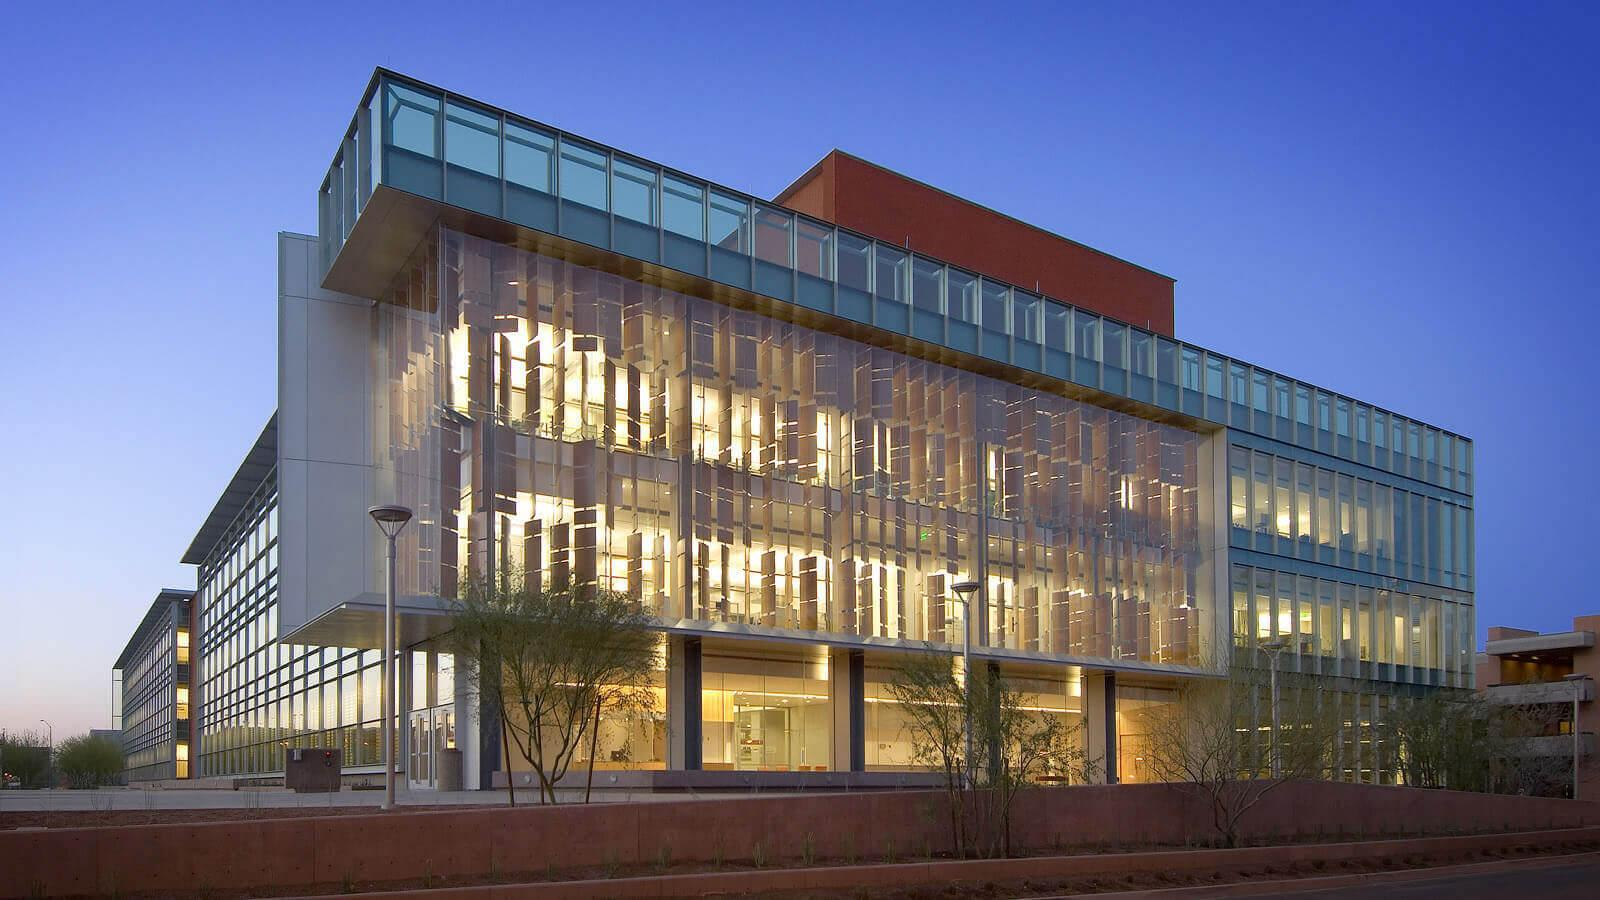 The exterior of the Biodesign building on ASU's Tempe campus